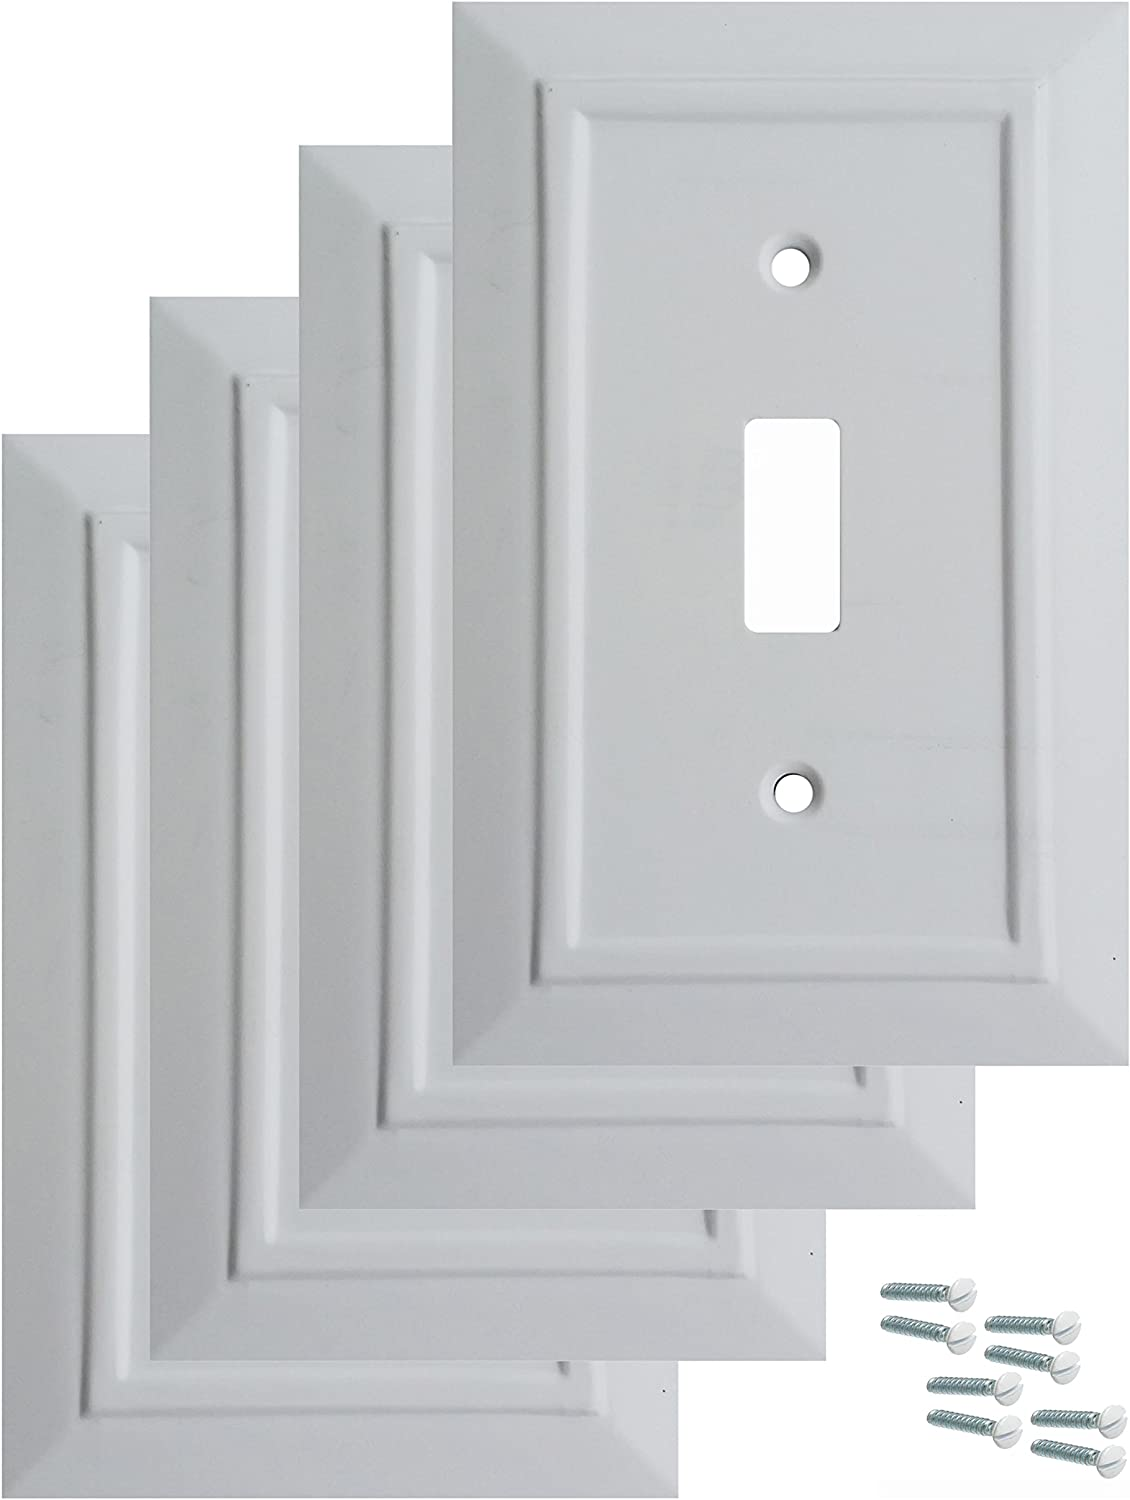 Pack of 4 Wall Plate Outlet Switch Covers by SleekLighting   Classic Architecture Wall plates  Variety of Styles: Decorator/Duplex/Toggle/Blank/& Combo   Size: 1 Gang Toggle